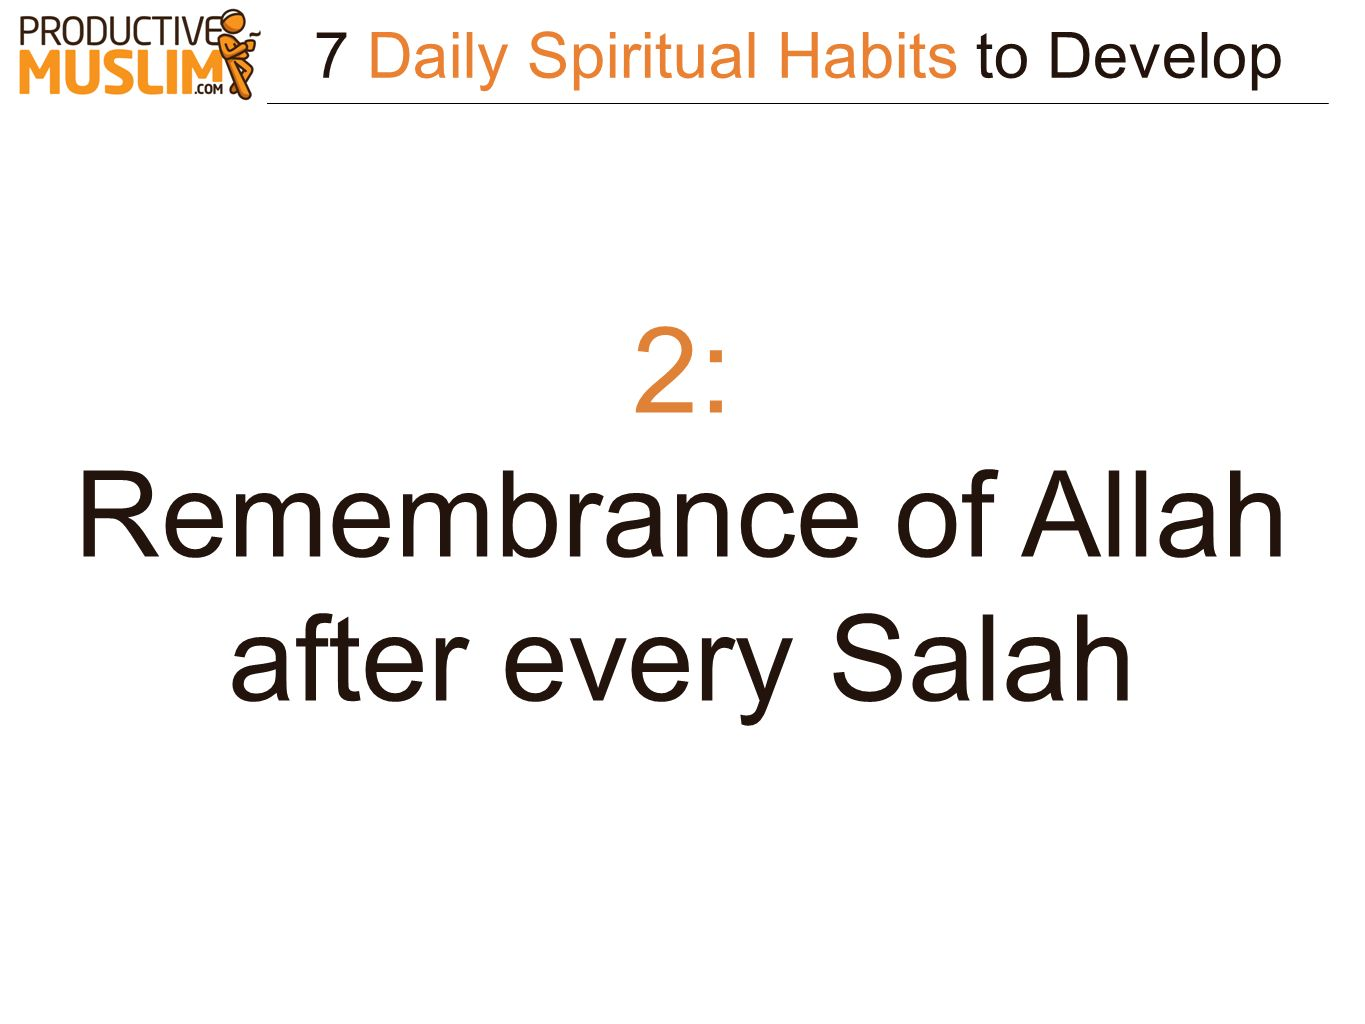 Remembrance of Allah after every Salah